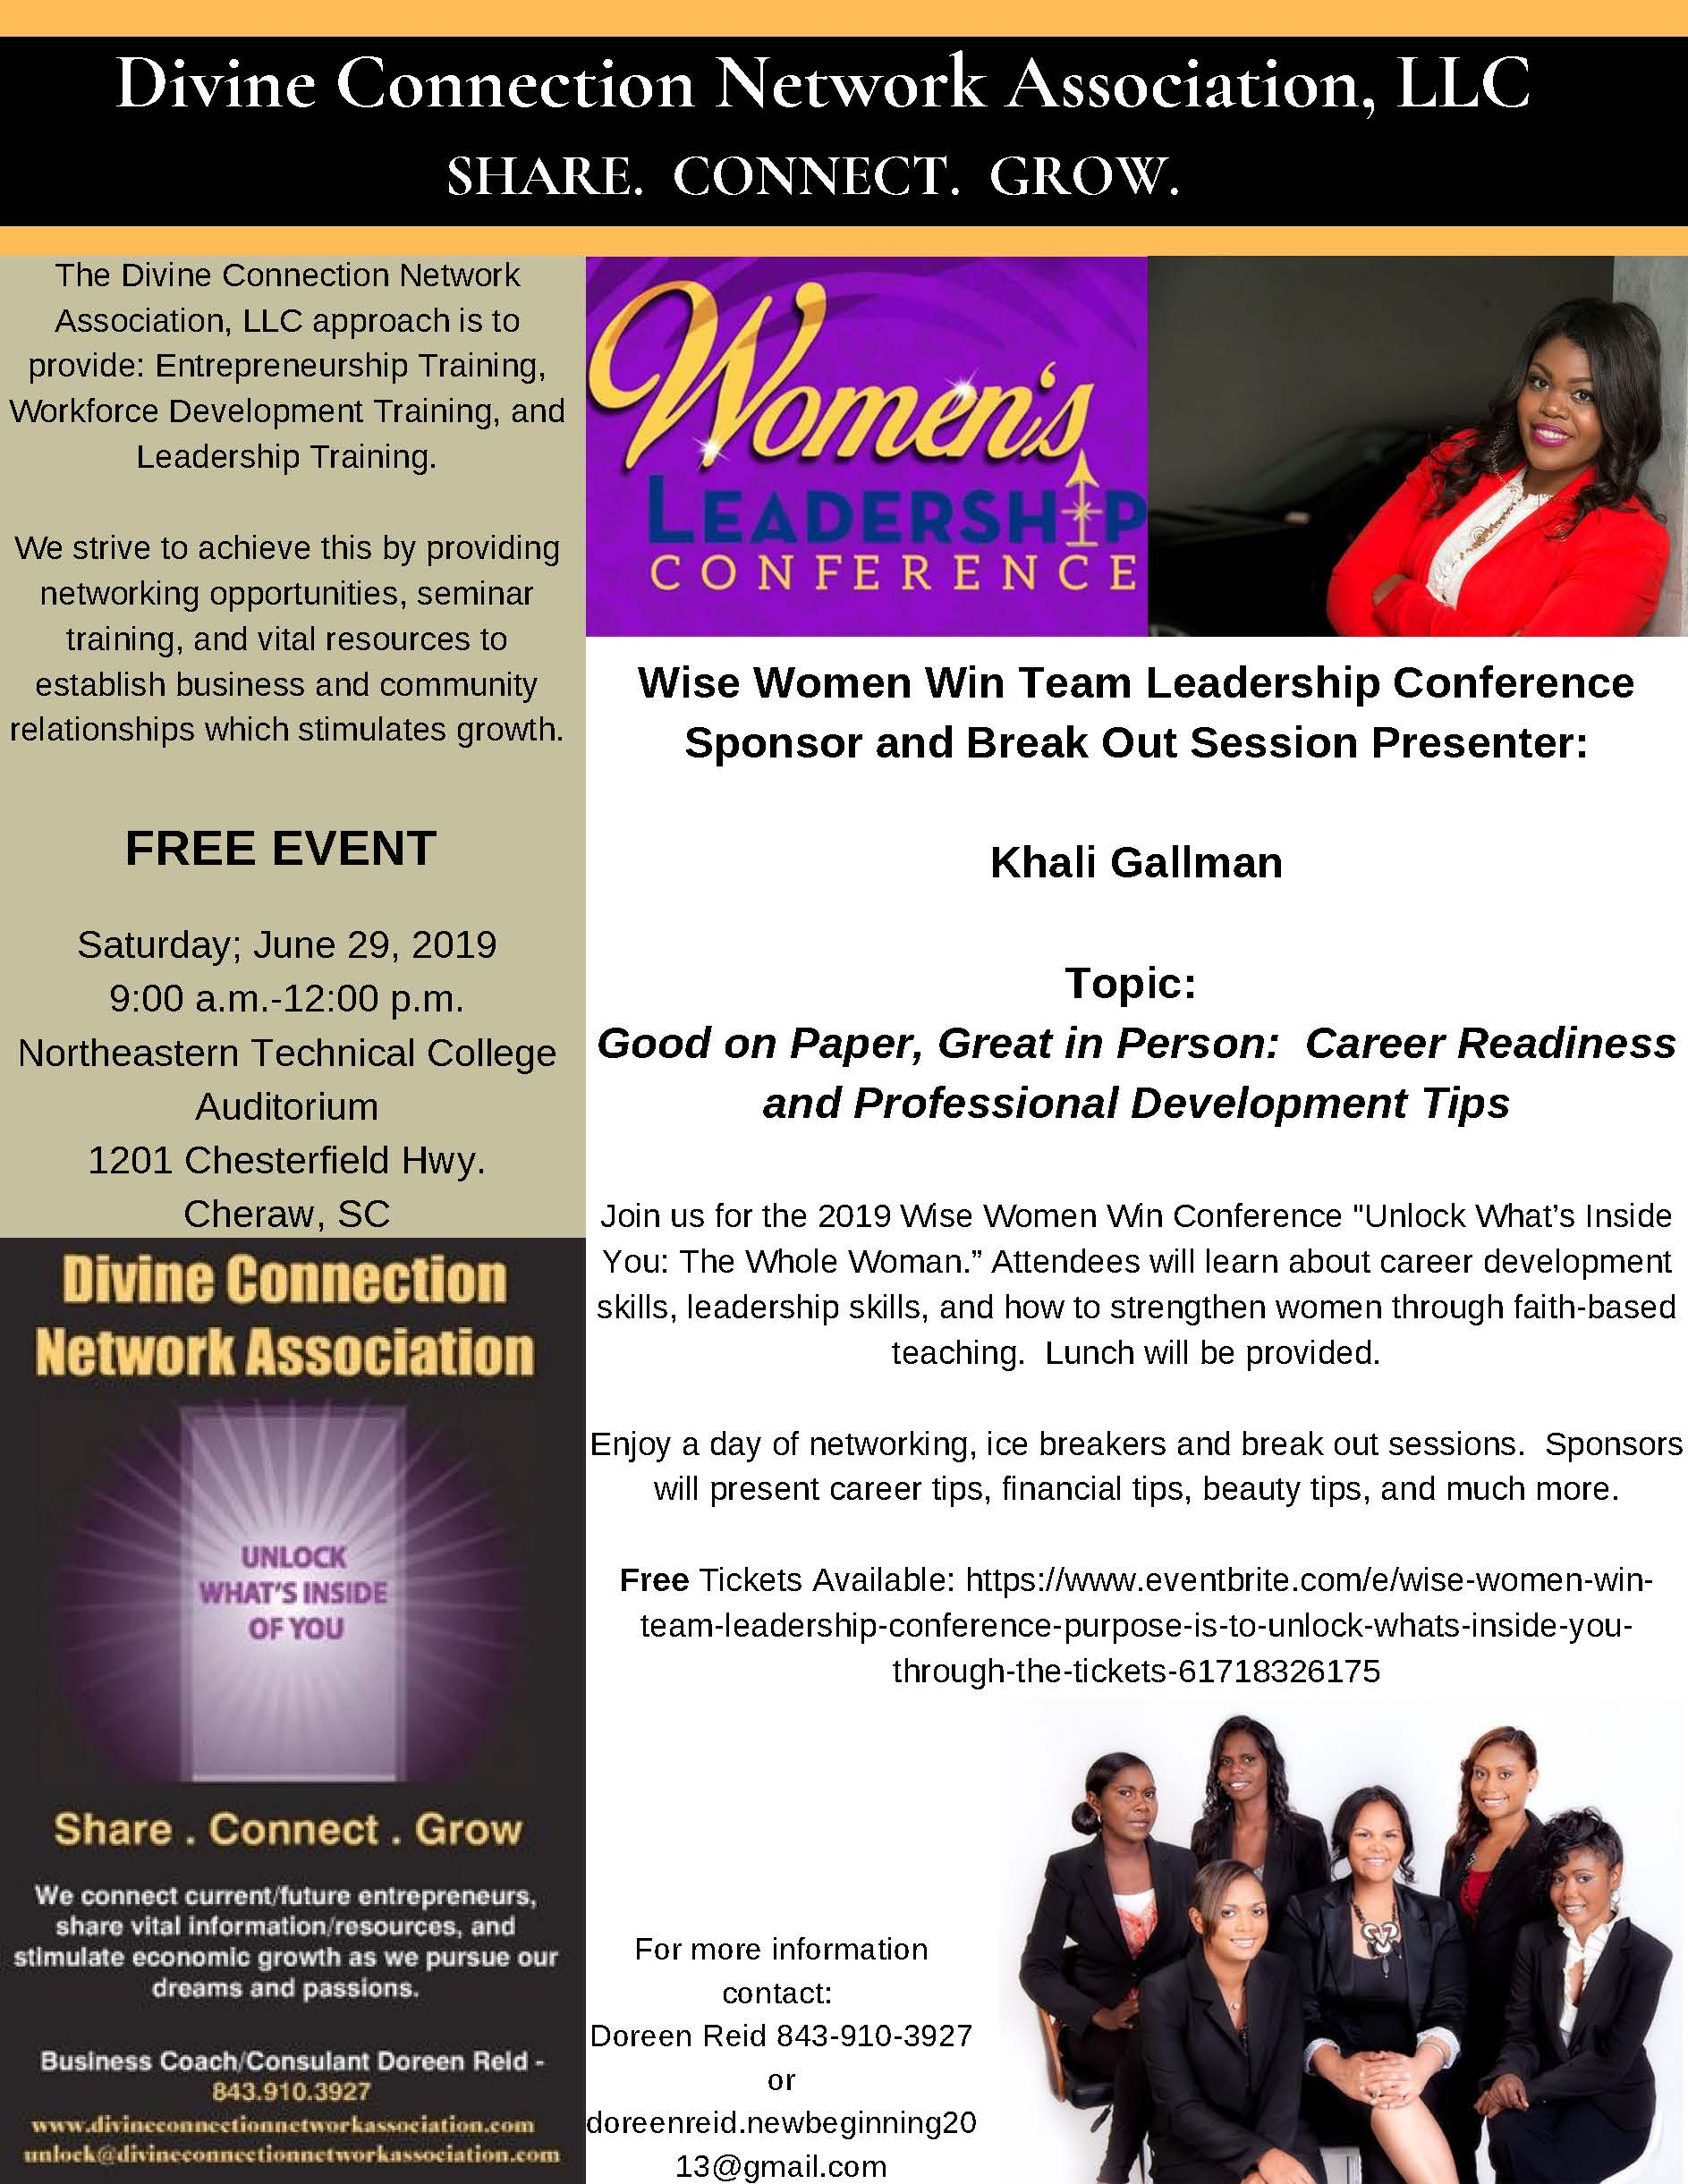 Wise Women Win Leadership Conference_KhaliGallman.jpg